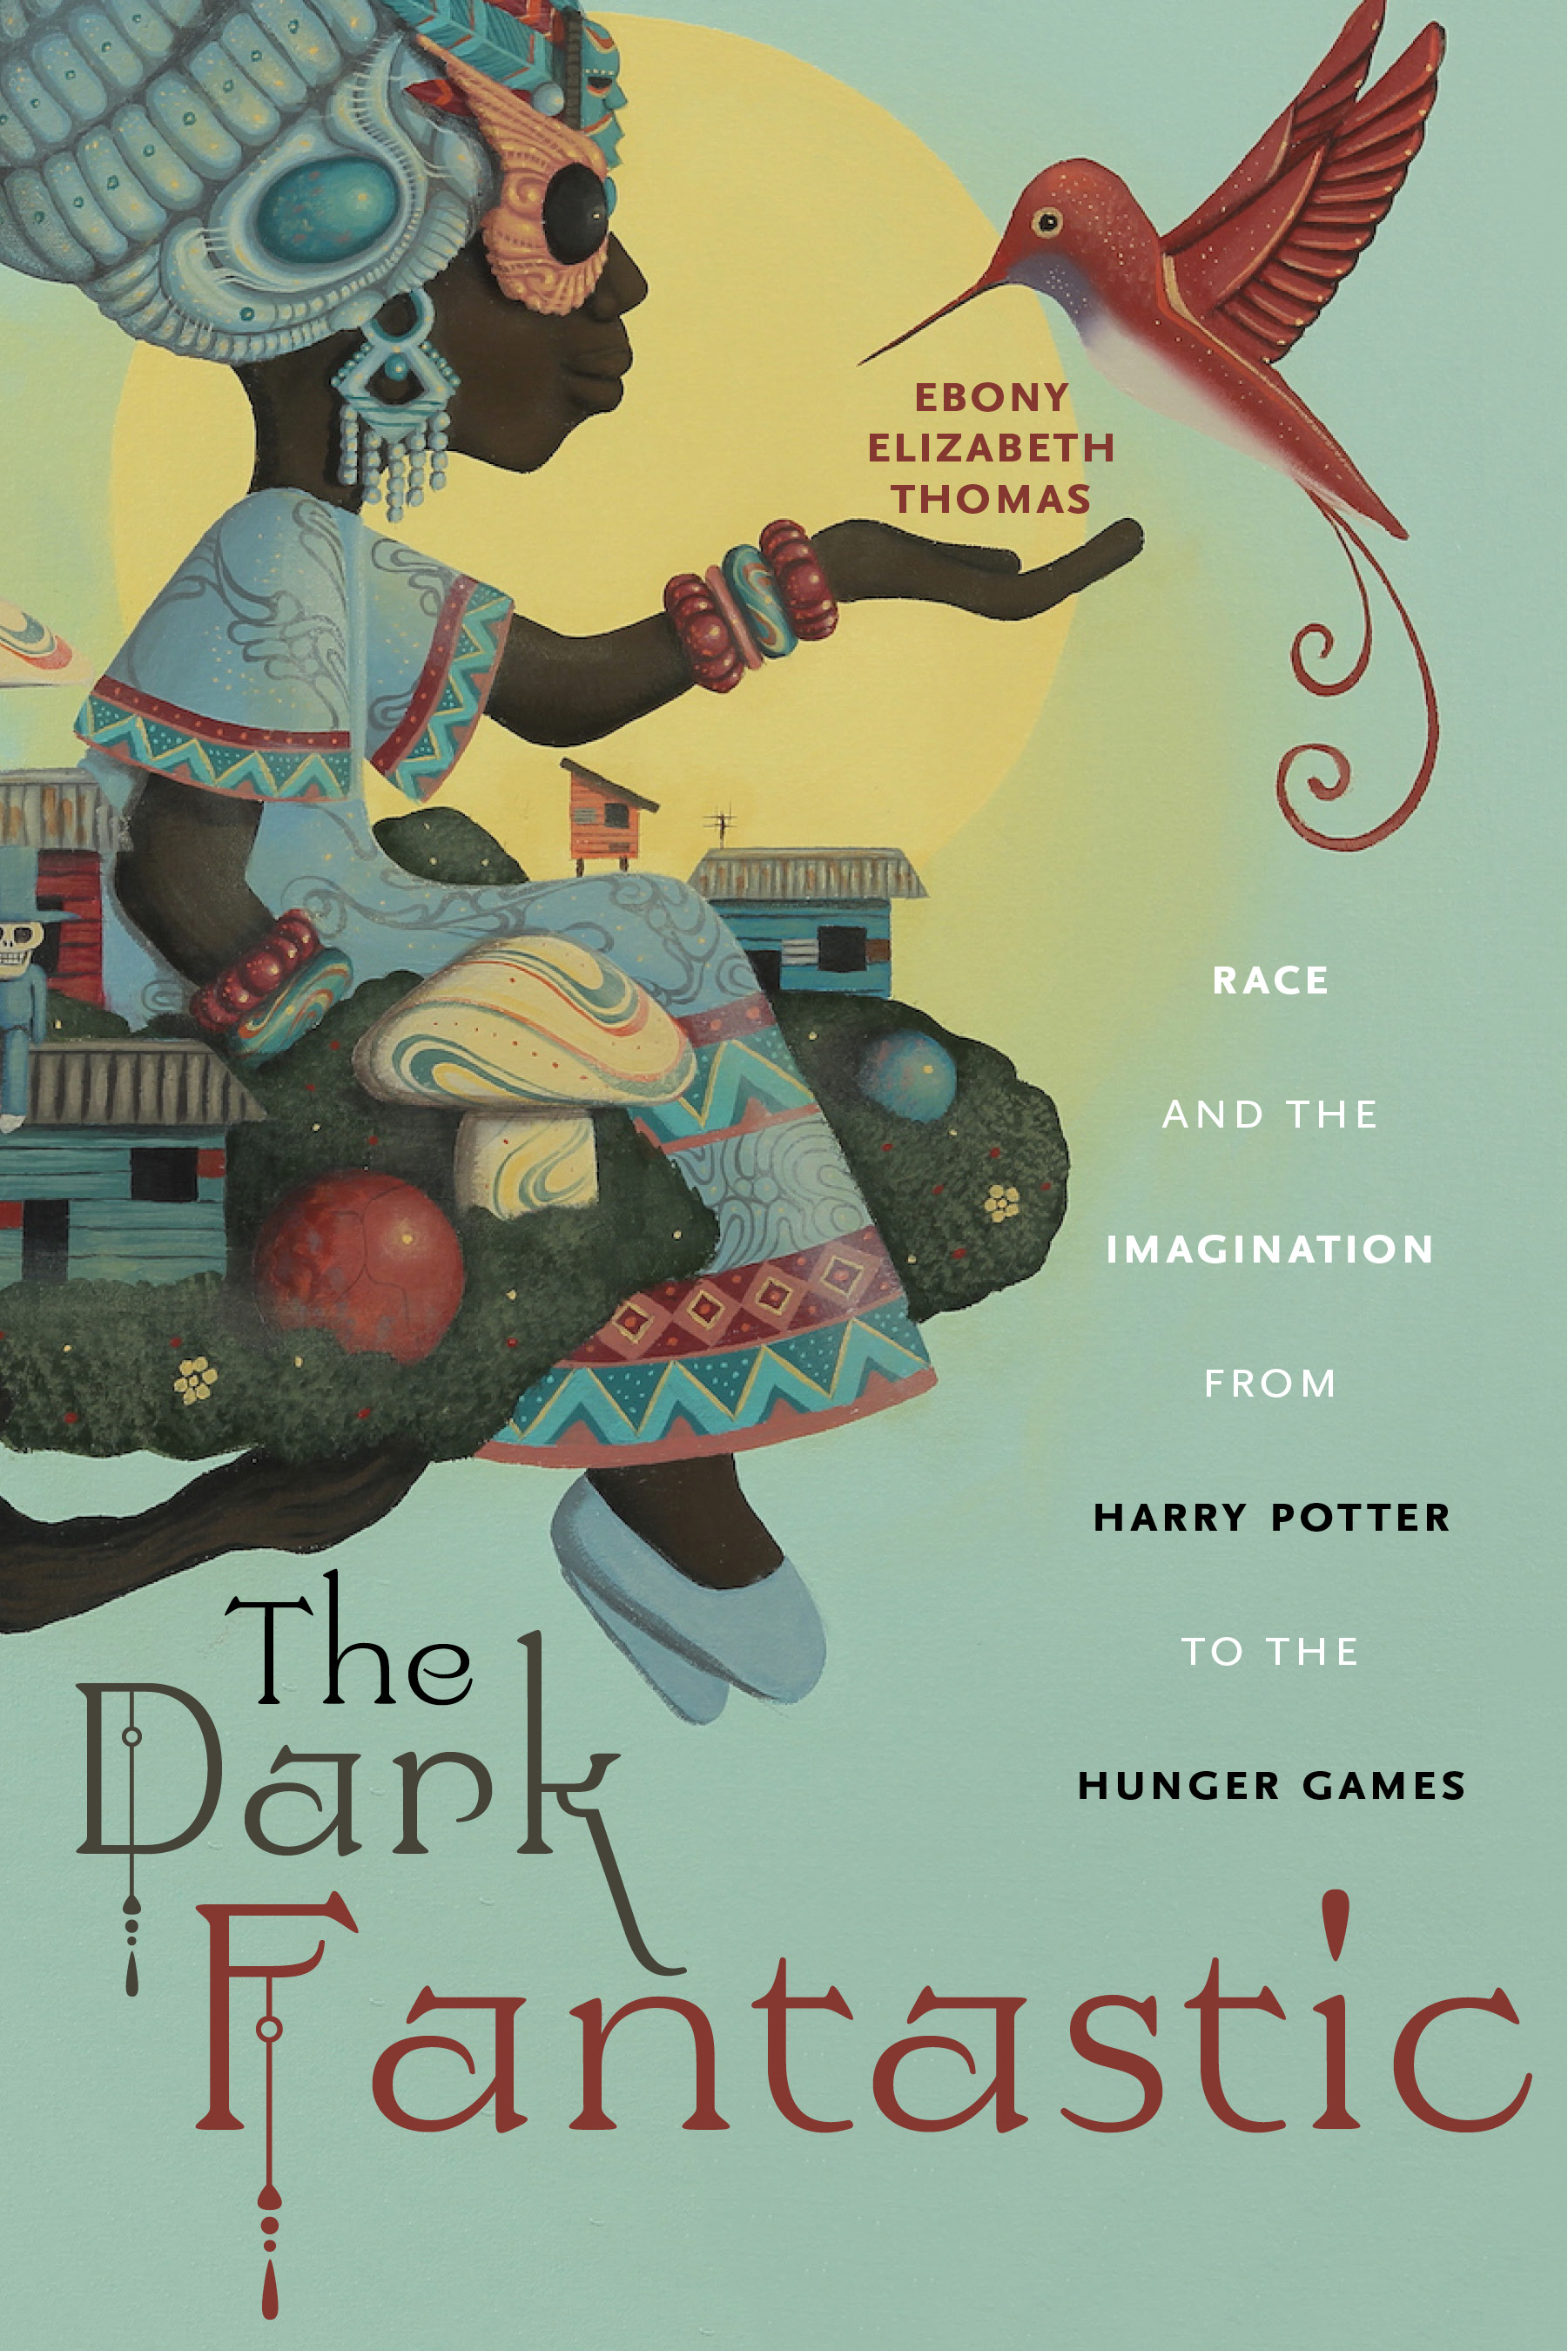 The Dark Fantastic Race and the Imagination from Harry Potter to the Hunger Games